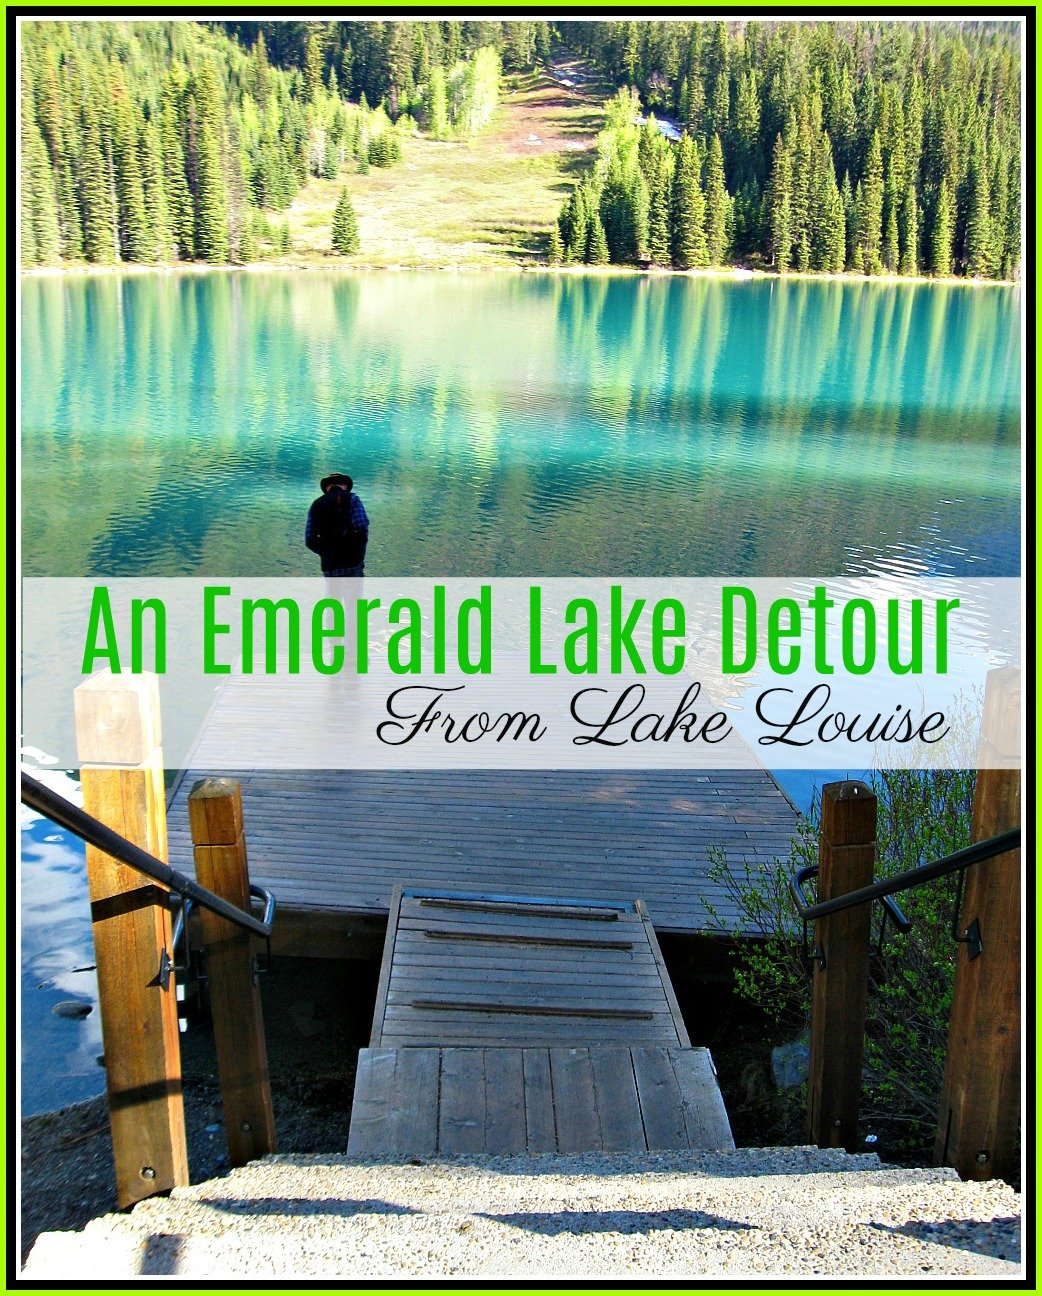 Lake Louise to Emerald Lake Detour